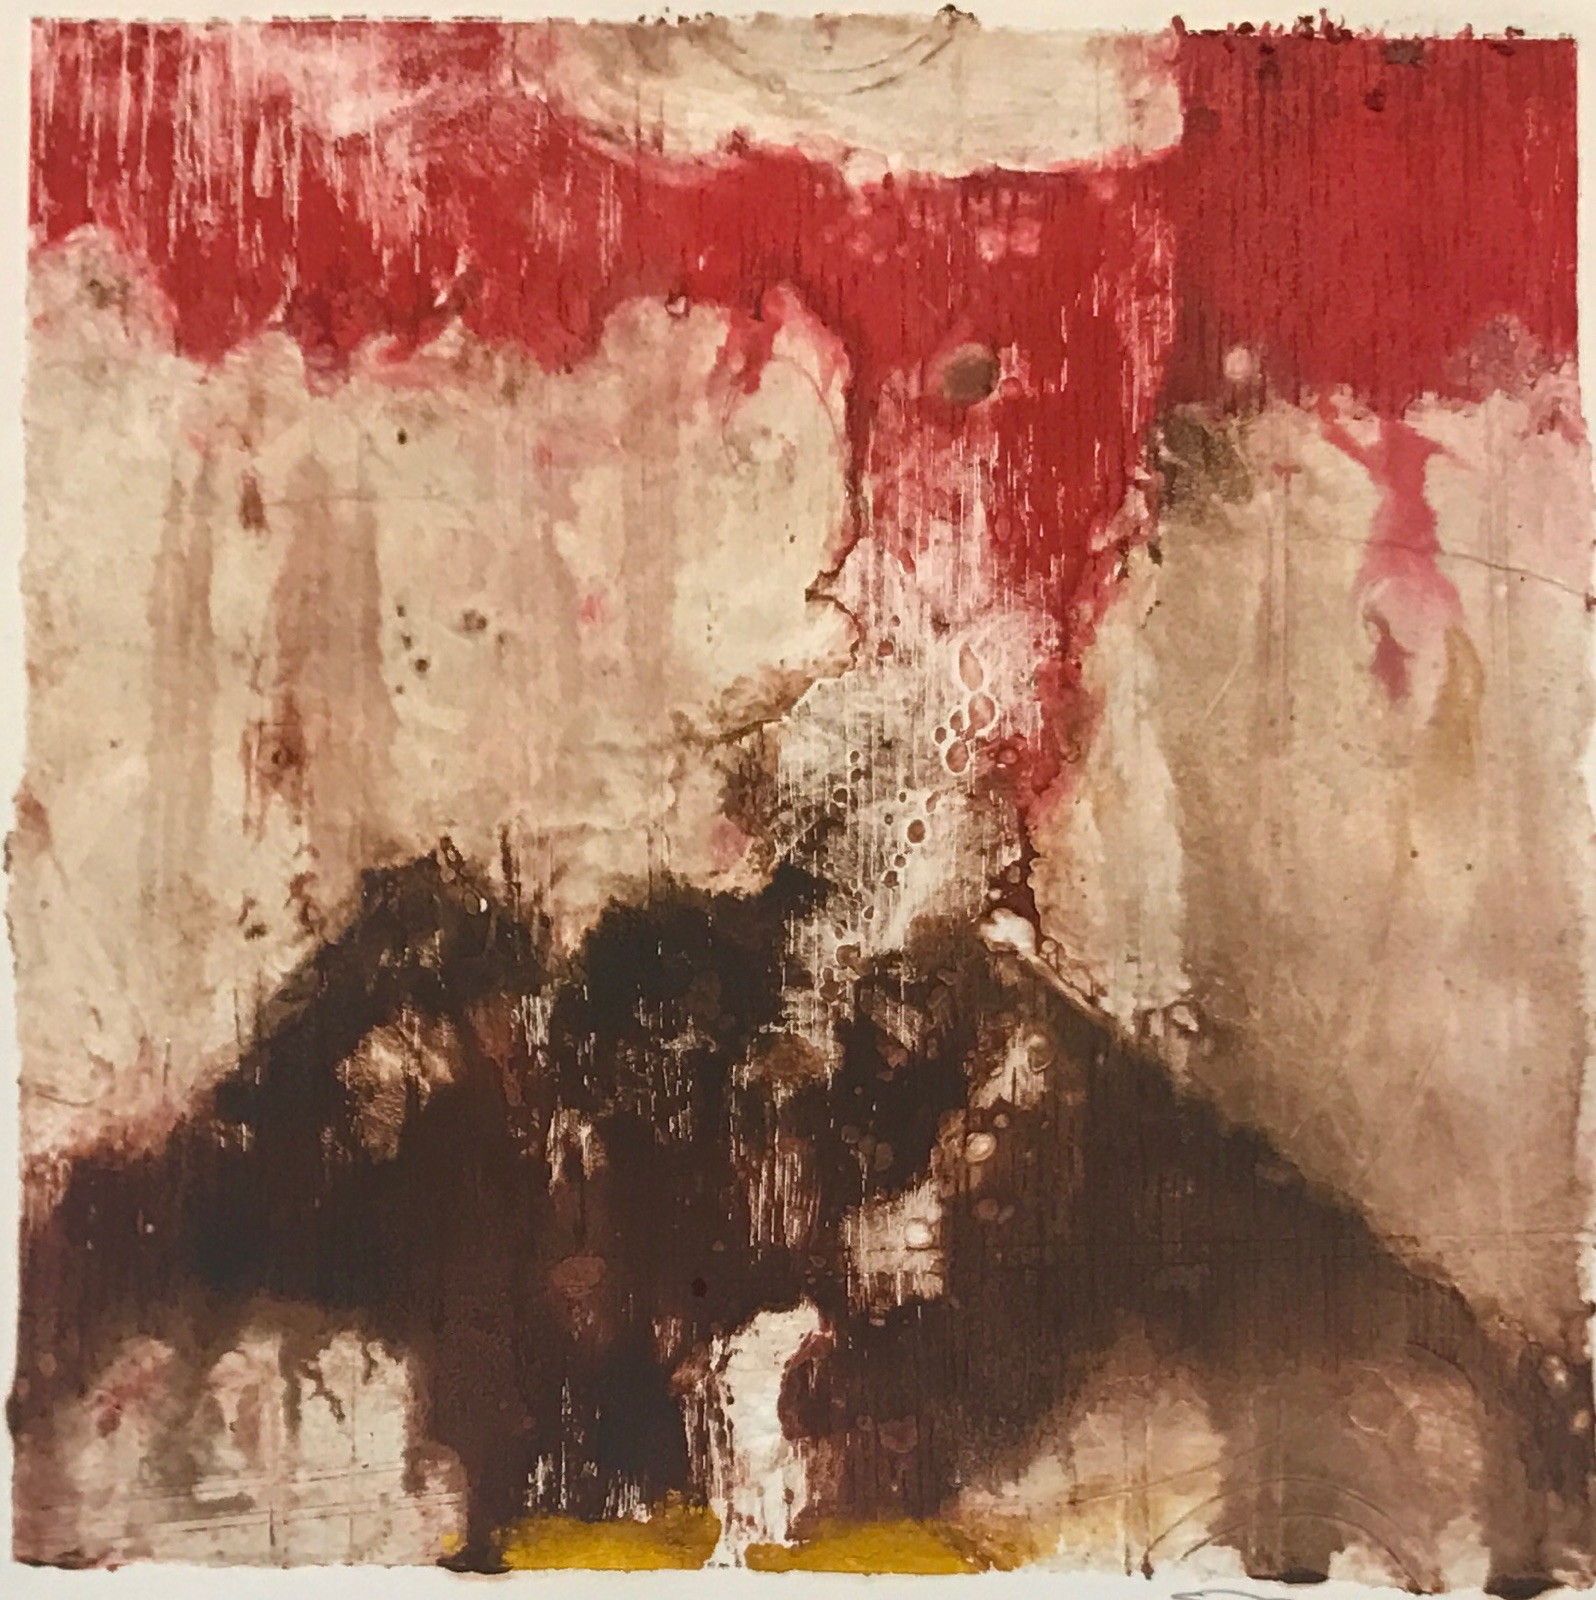 Vocano Print,  encaustic collagraph monoprint on paper 10 x 10 inches. Available at   Warnock Fine Arts  , Palm Springs